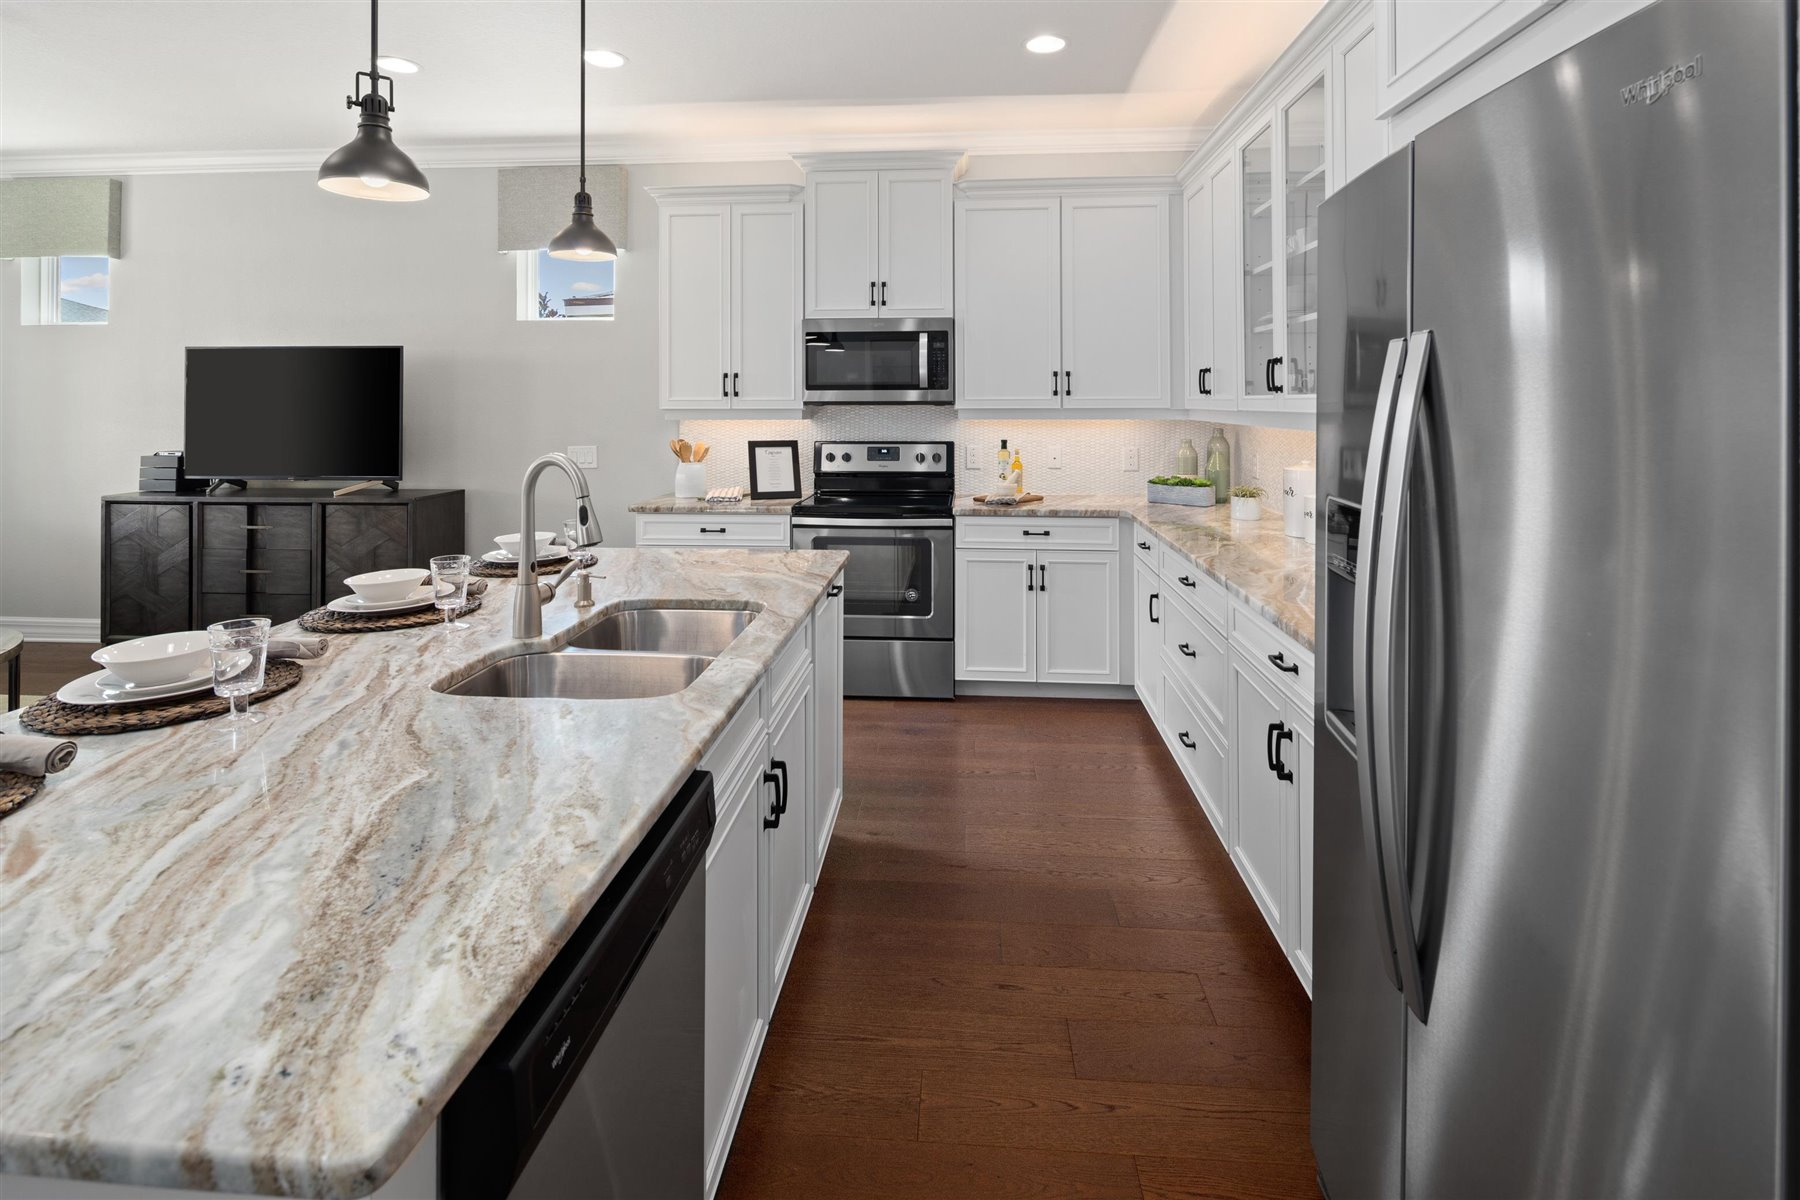 Crescent Plan Kitchen at Waterbrooke in Clermont Florida by Mattamy Homes